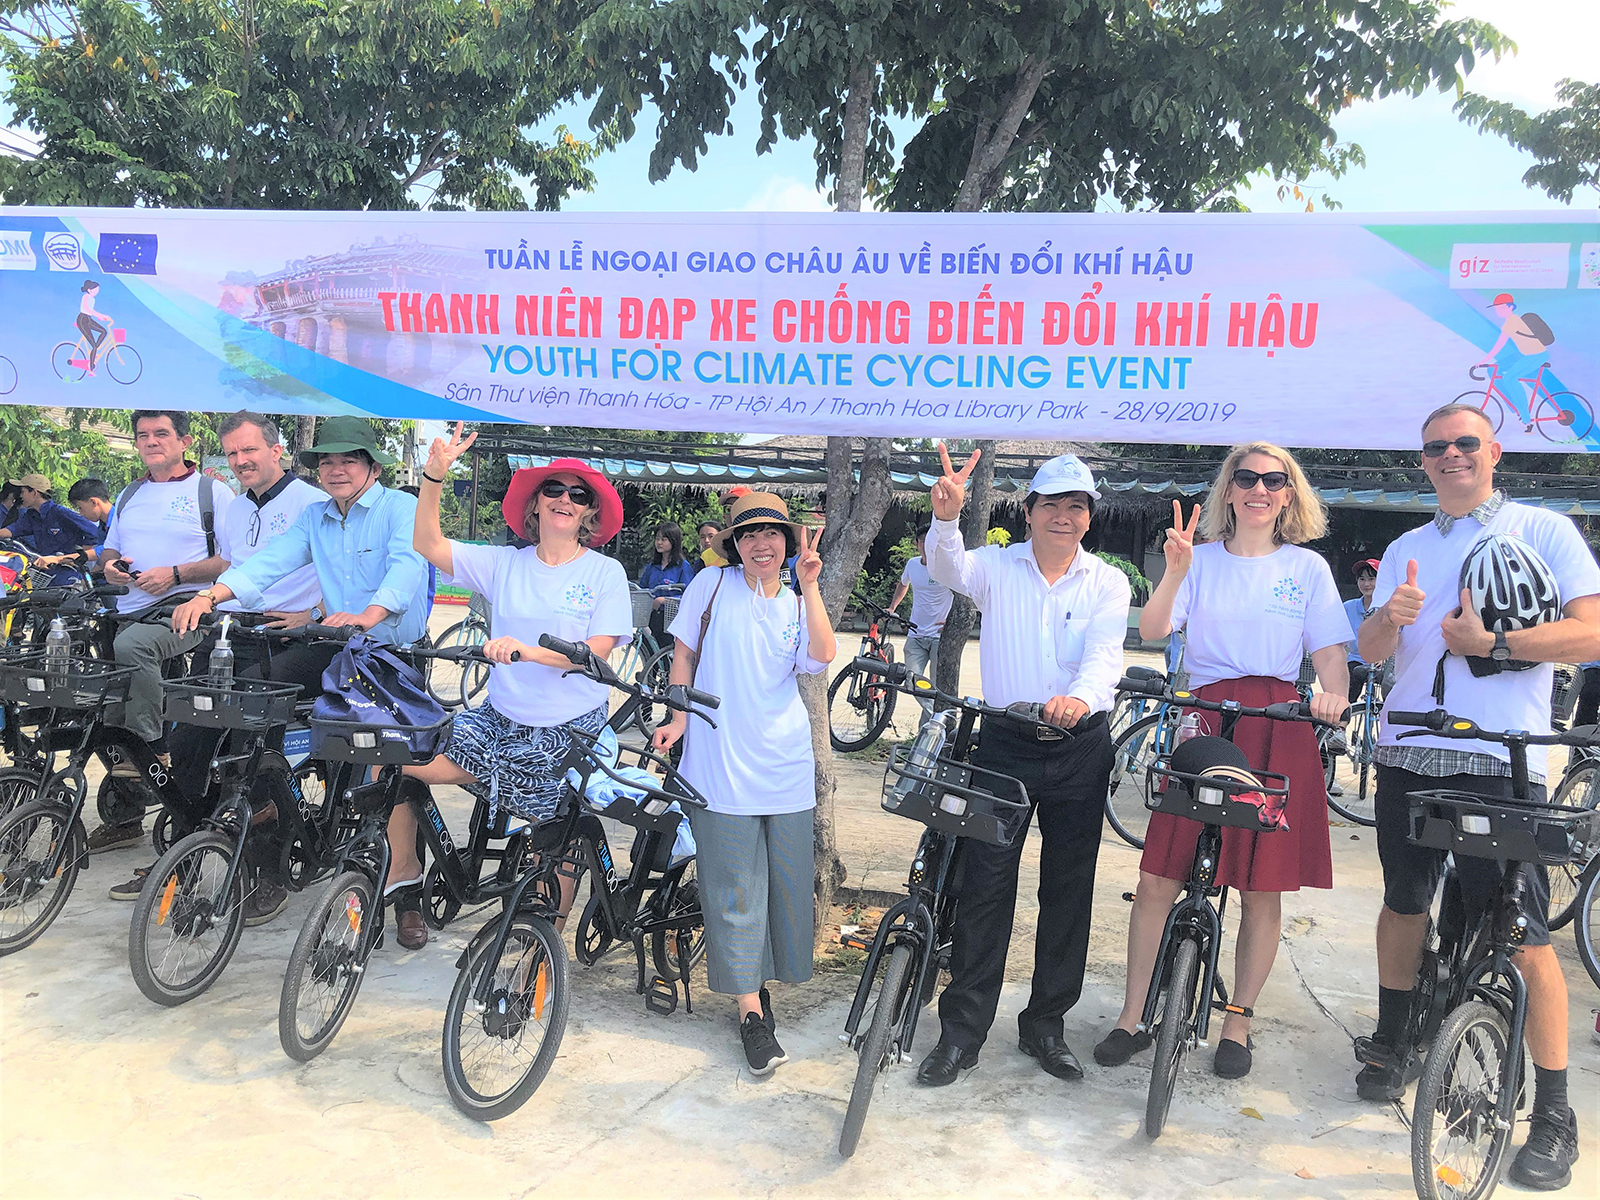 Hoi An city: Encourage young people to use bicycles in urban area